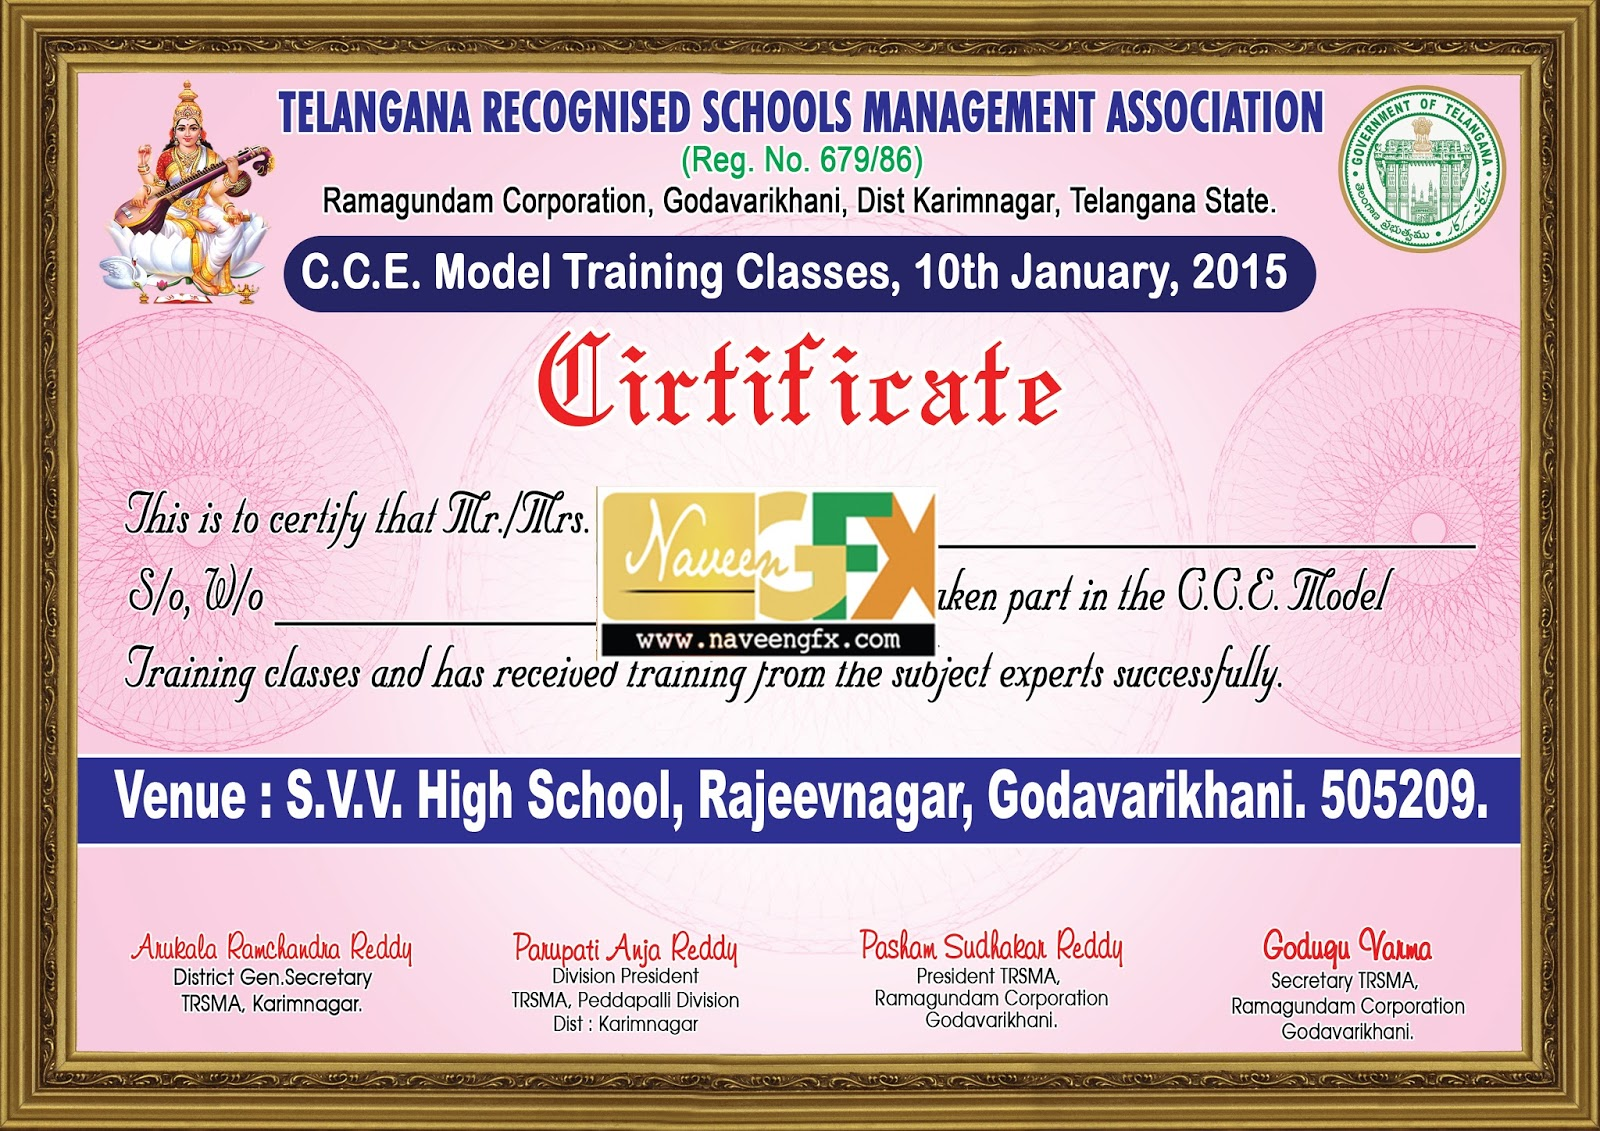 Appreciation Certificate Design Psd Background For Schools Management  Association  Certificate Maker Online Free